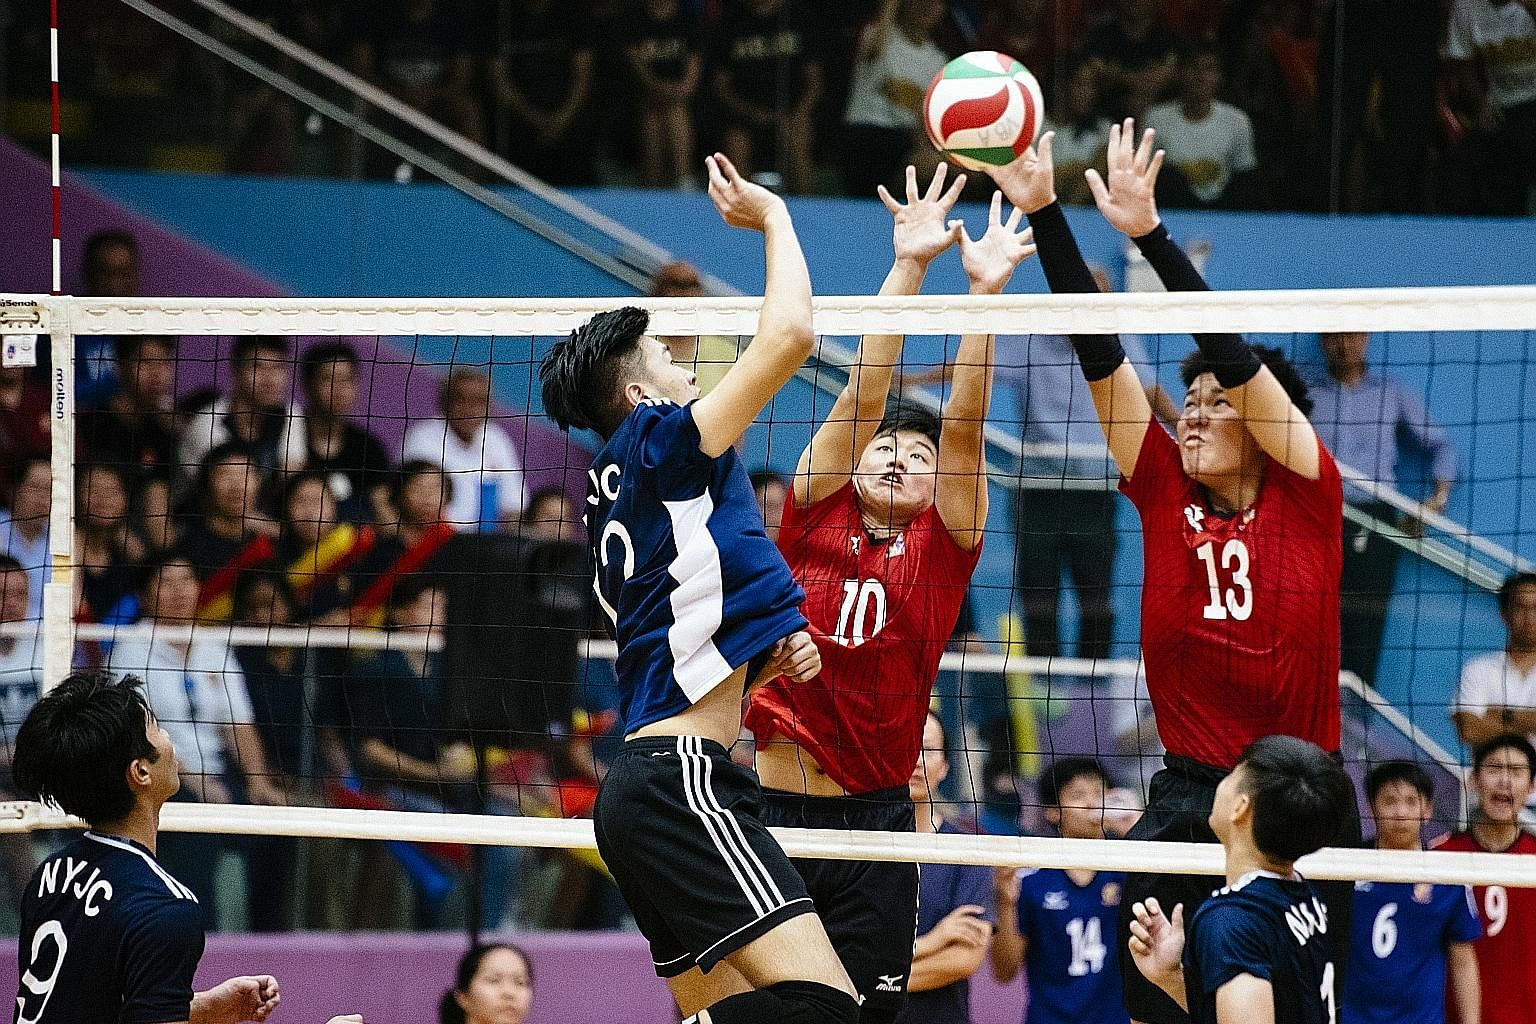 ACJC players Jevvon Tan (middle) and Caleb Seah attempting to block a ball from NYJC's Javier Lee. Nanyang won yesterday's A Division best-of-five final 3-1.